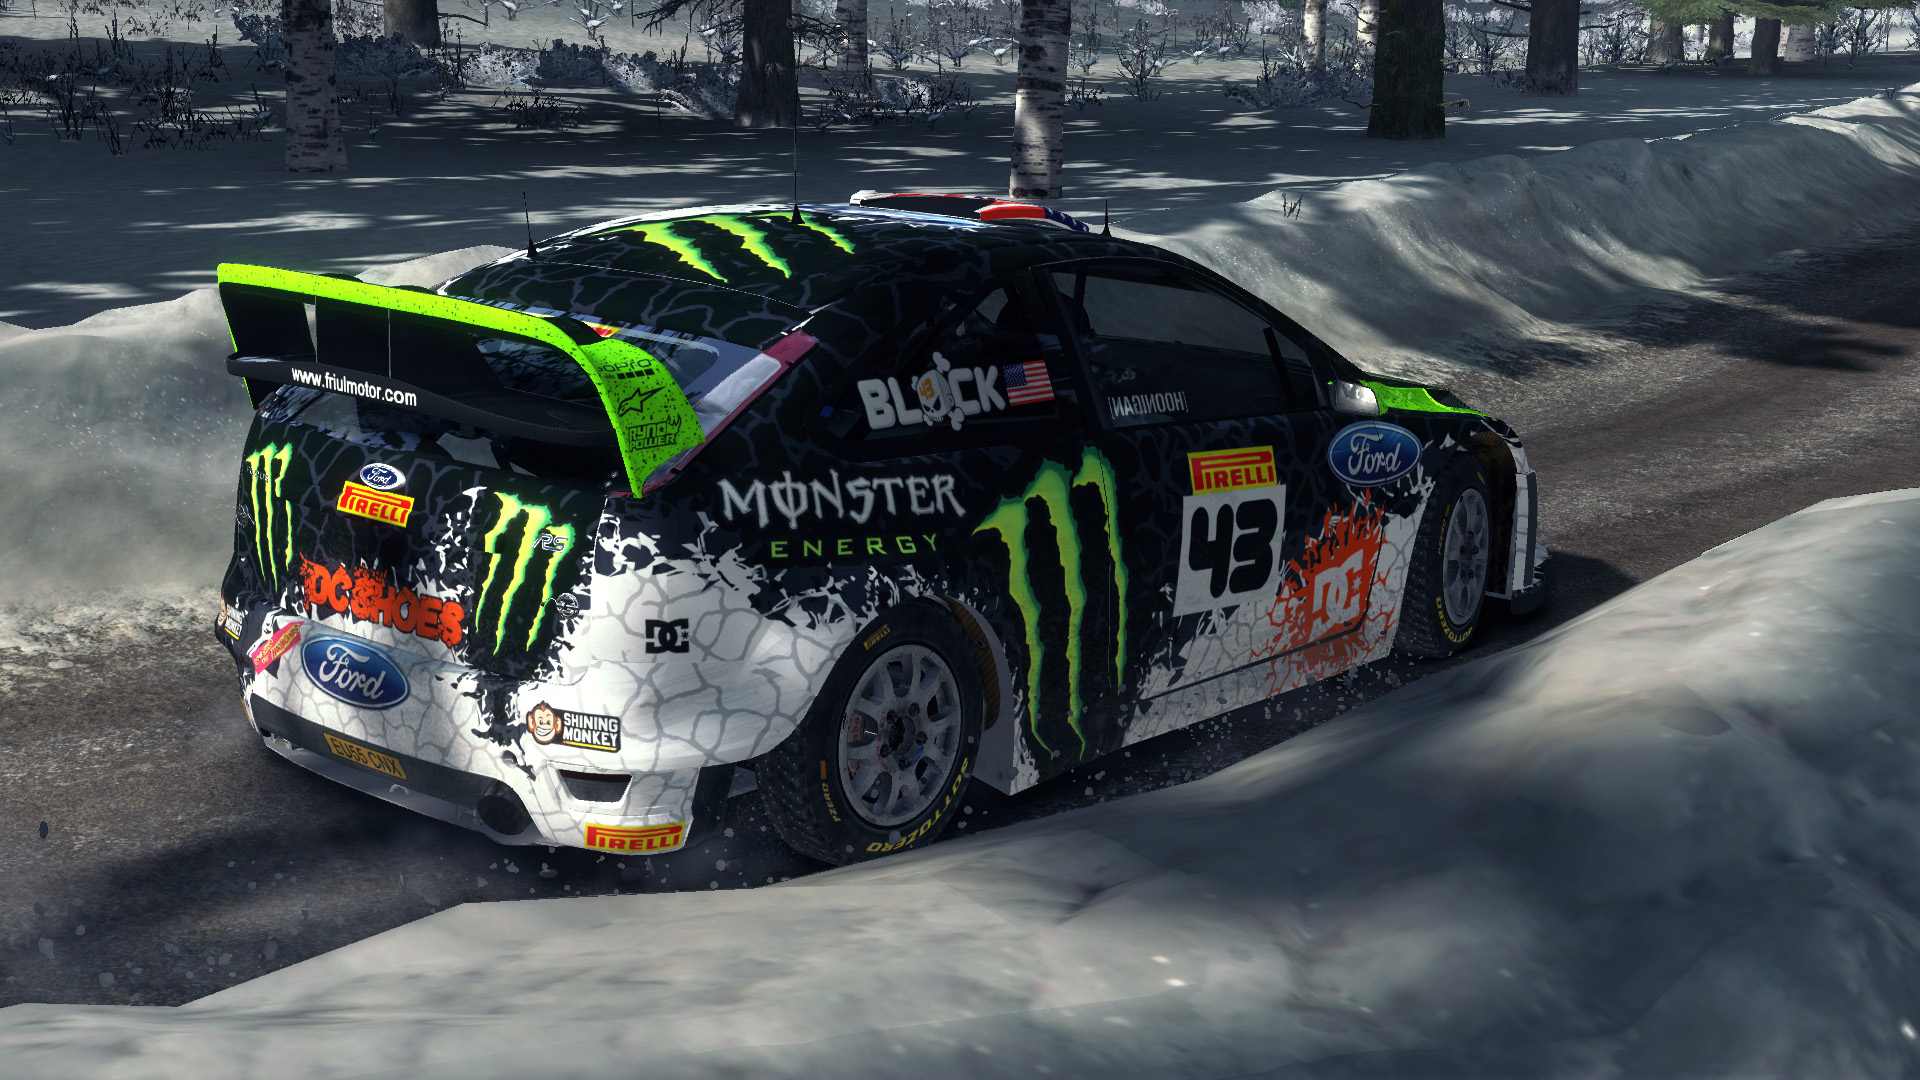 Ken_Block_in_Russia_11.jpg